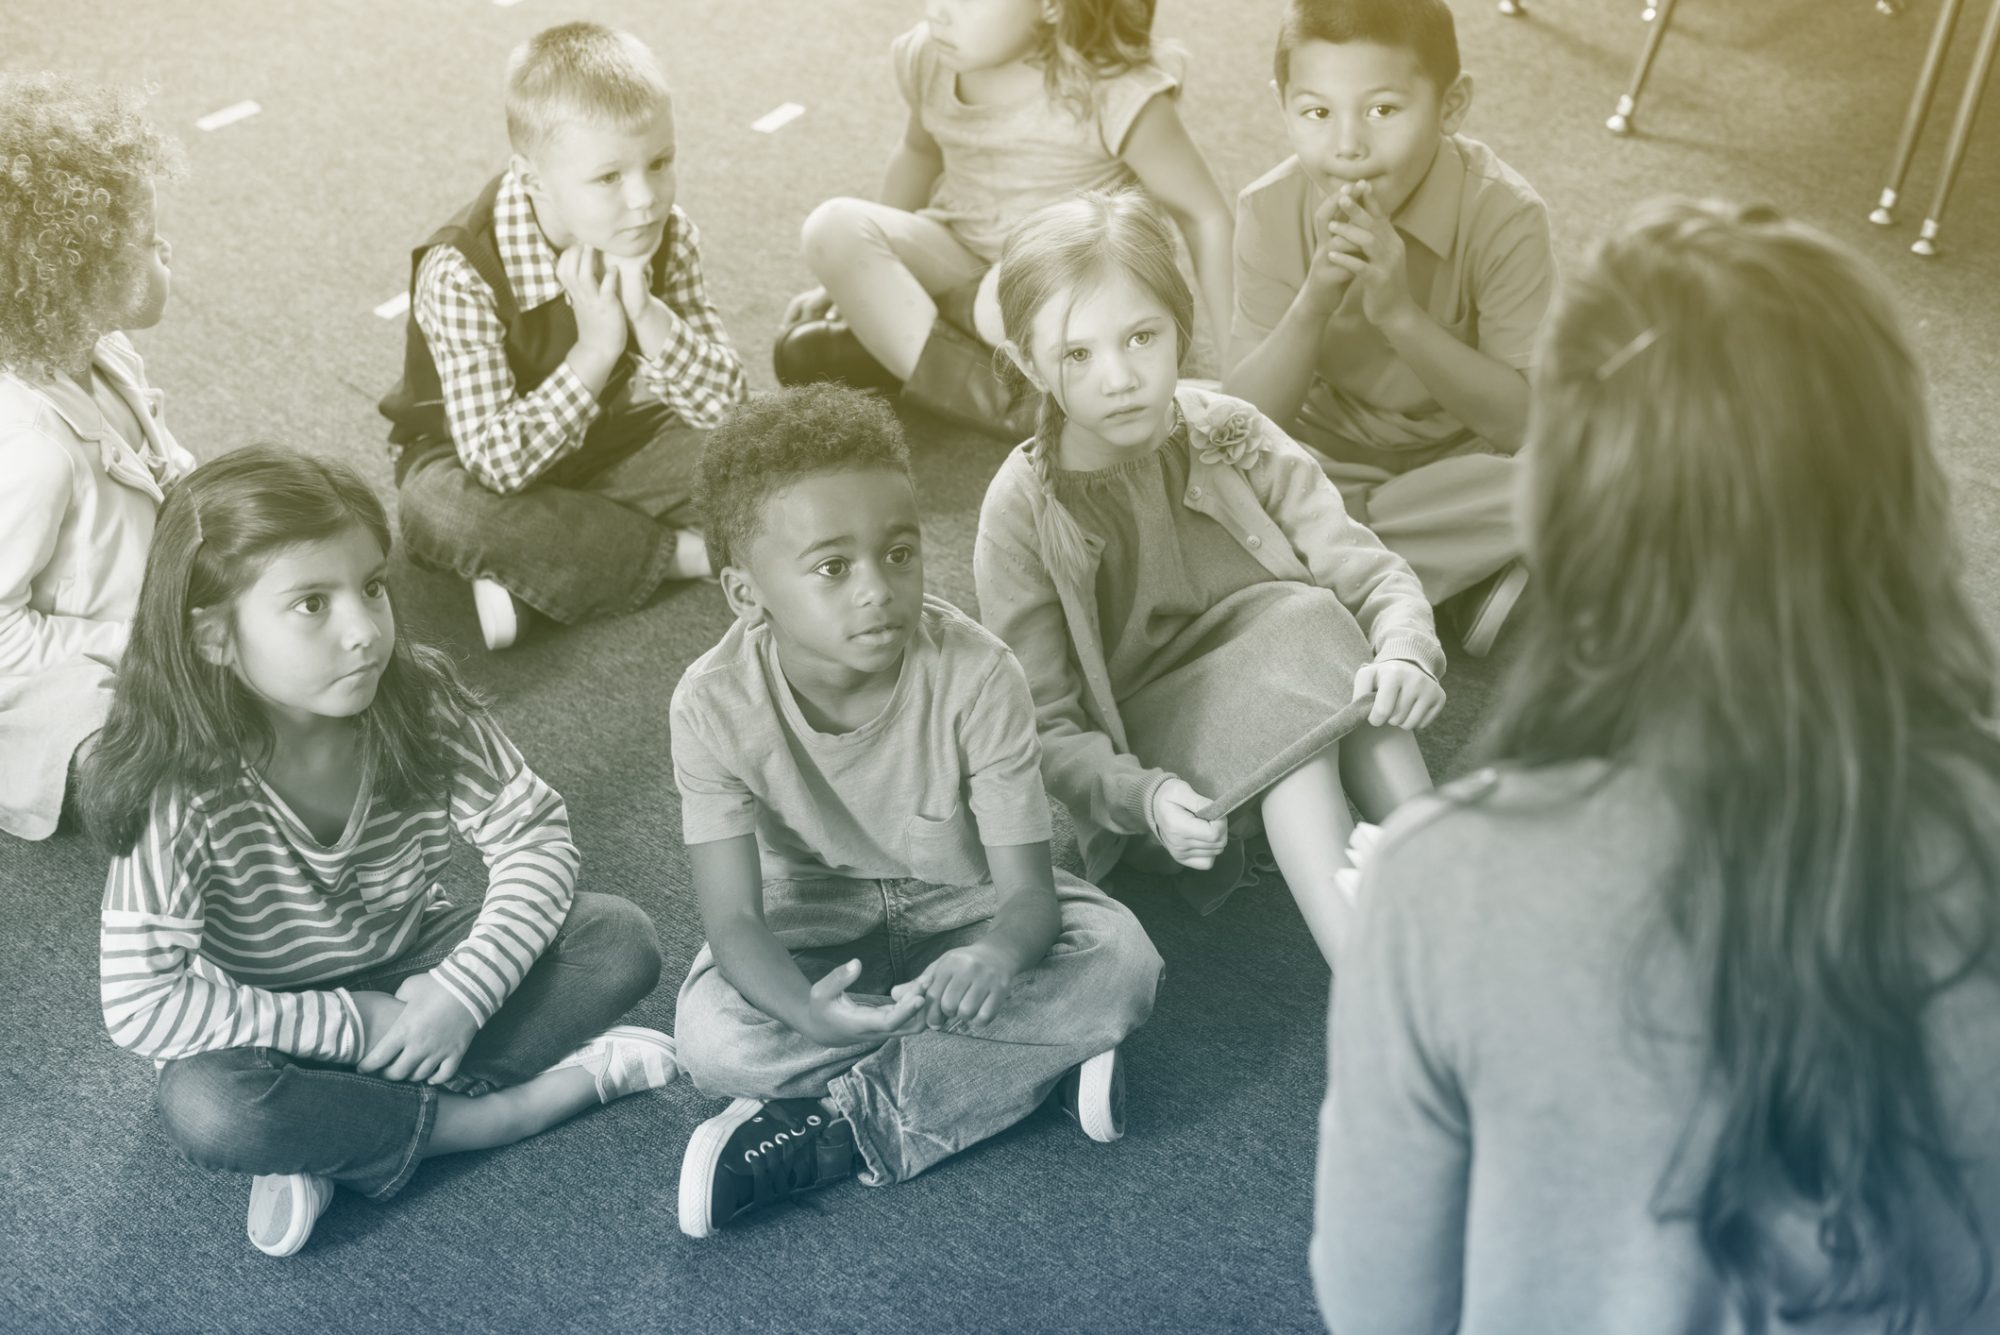 Kindergarten students sitting listening to teacher